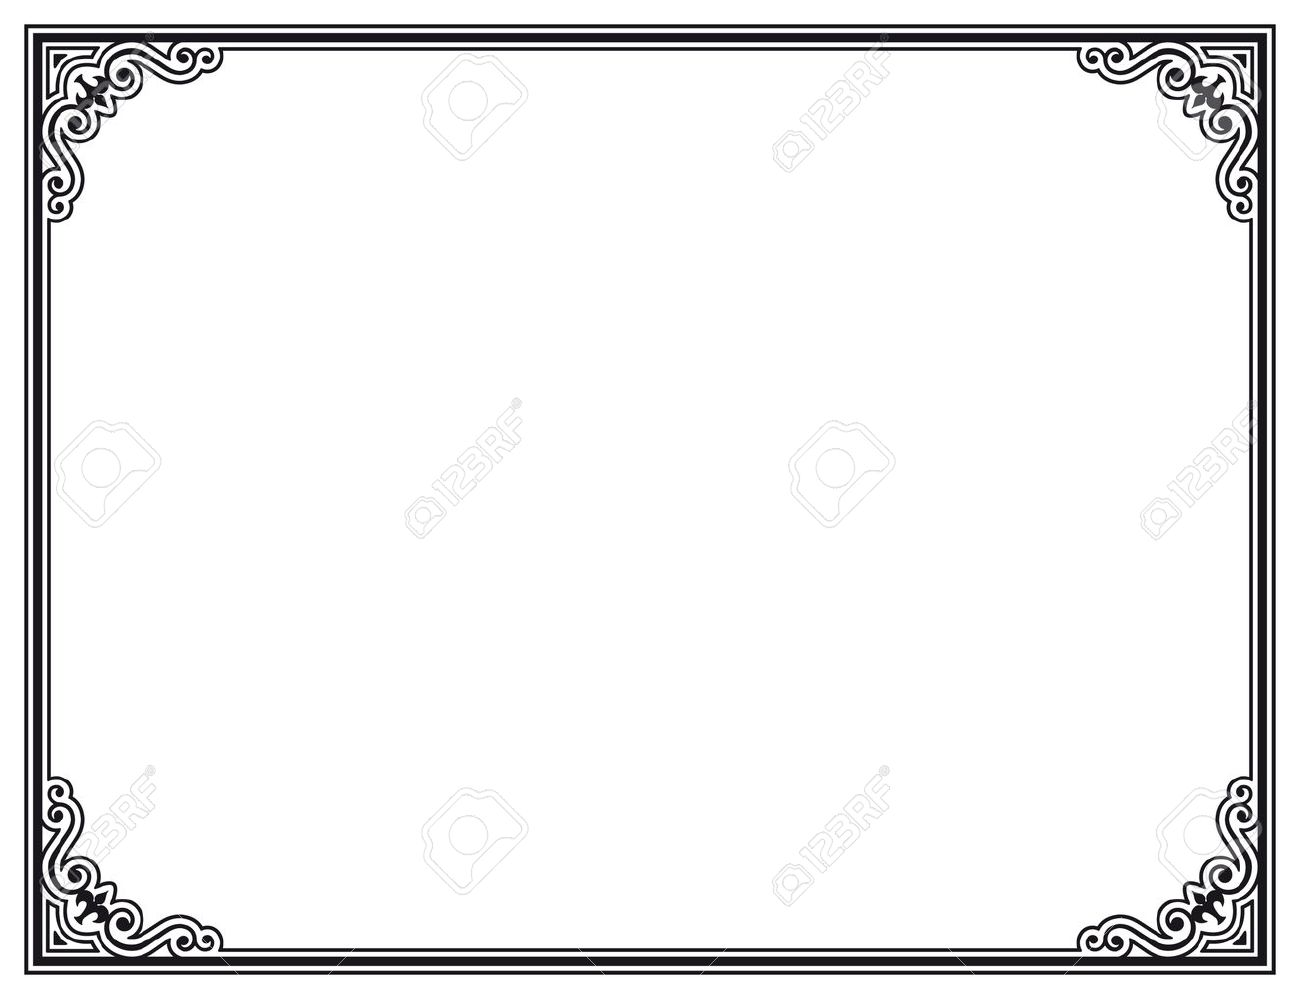 Black And White Decorative Frame Royalty Free Cliparts, Vectors, And ...